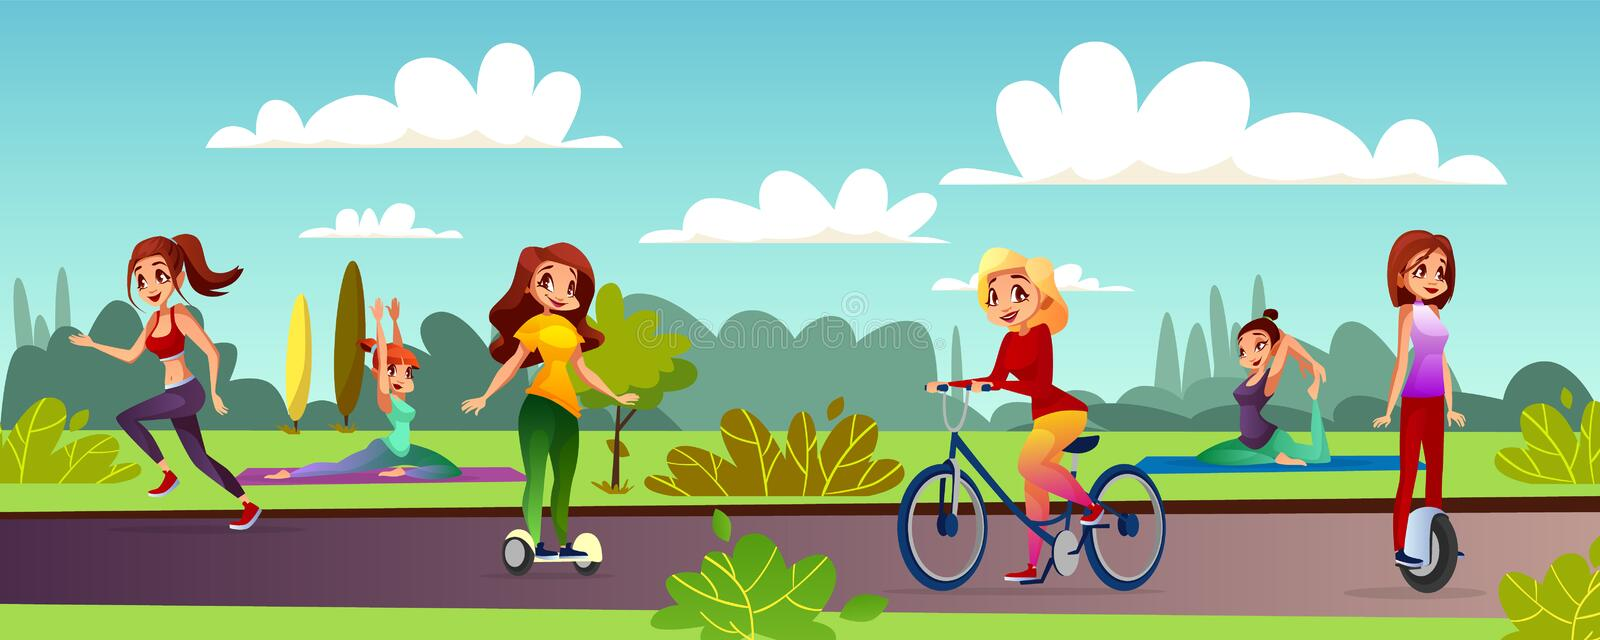 Girls leisure in park vector illustration. Girls leisure vector illustration of young women recreation in outdoor park. Cartoon teen characters jogging, making stock illustration